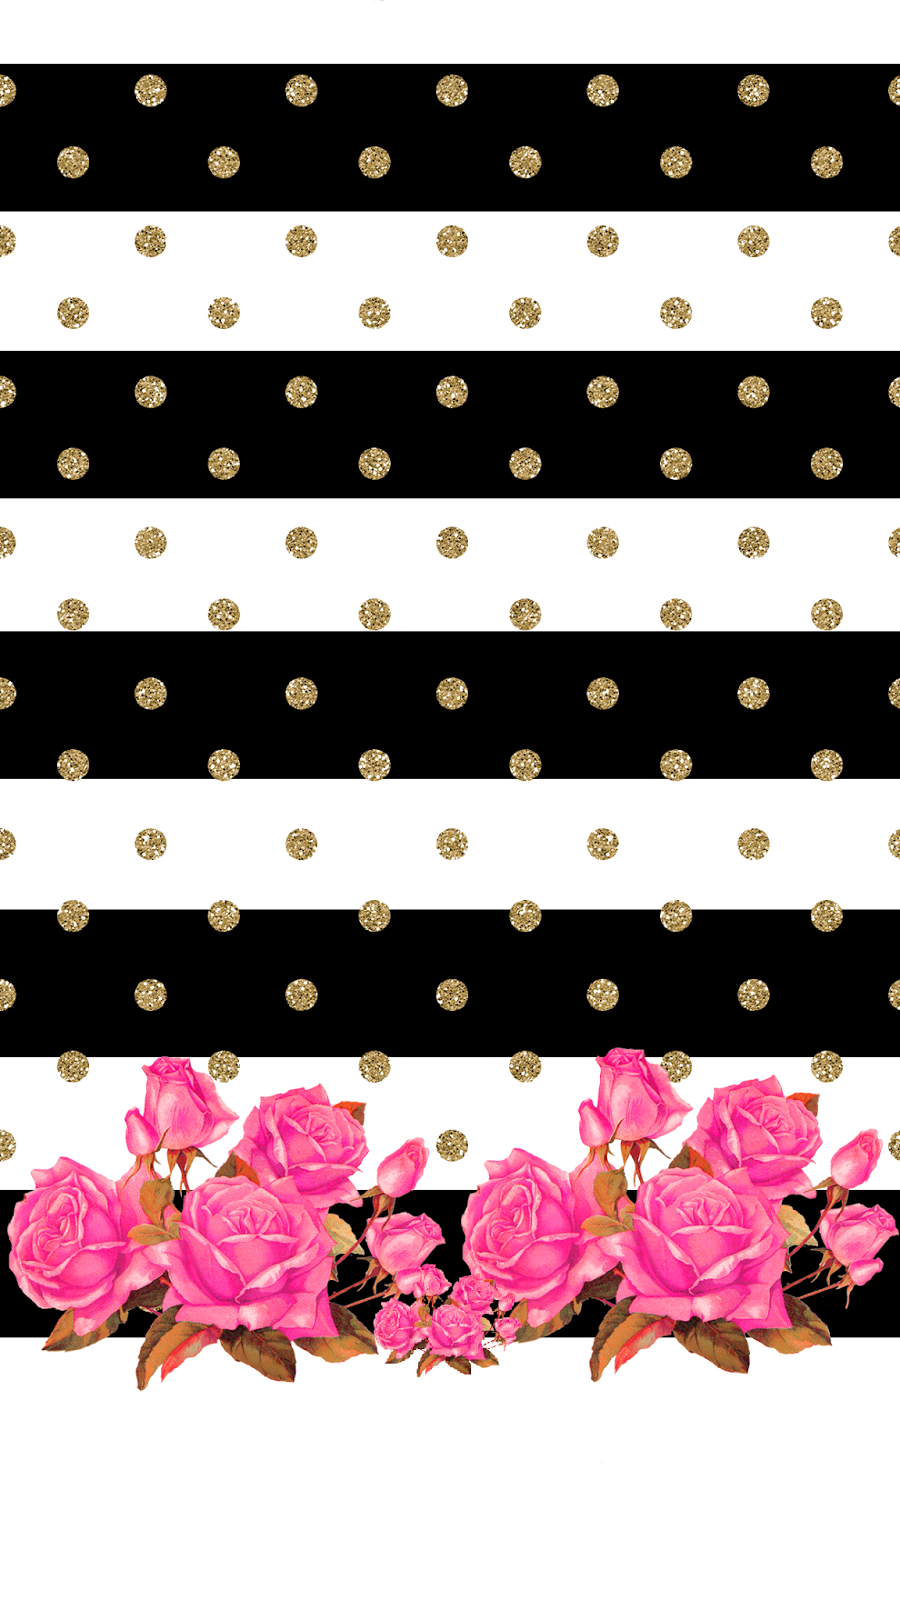 Mommy Lhey: Vintage Classy Rose   Even my phone wants to look cute!   Kate spade wallpaper ...